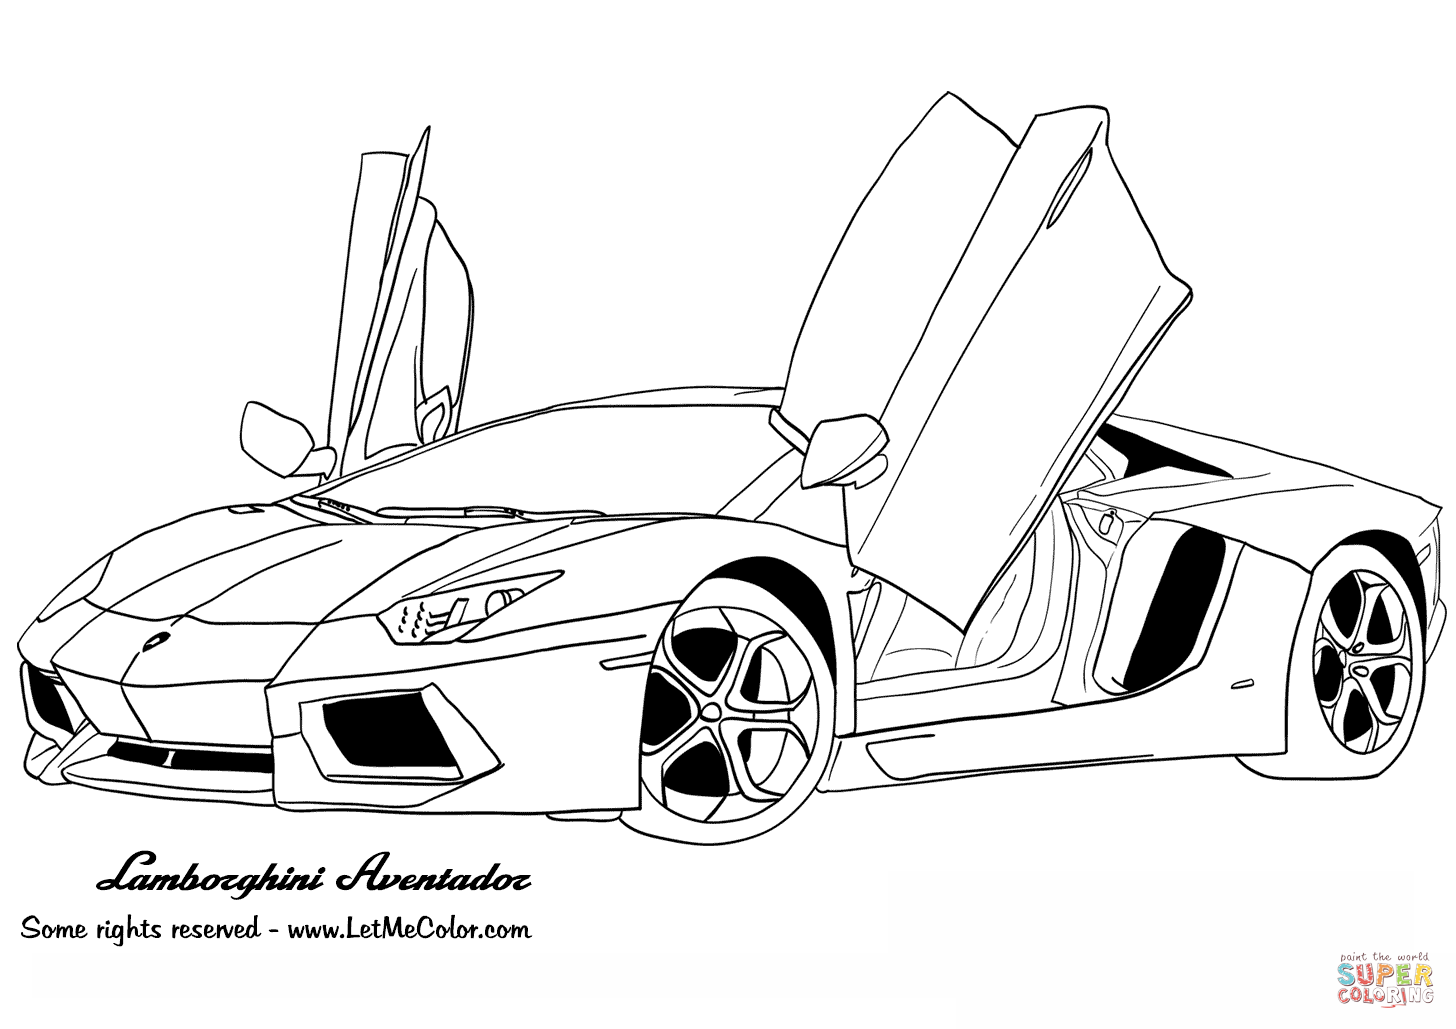 Lamborghini Aventador Coloring Page Free Printable Coloring Pages Cars Coloring Pages Truck Coloring Pages Race Car Coloring Pages